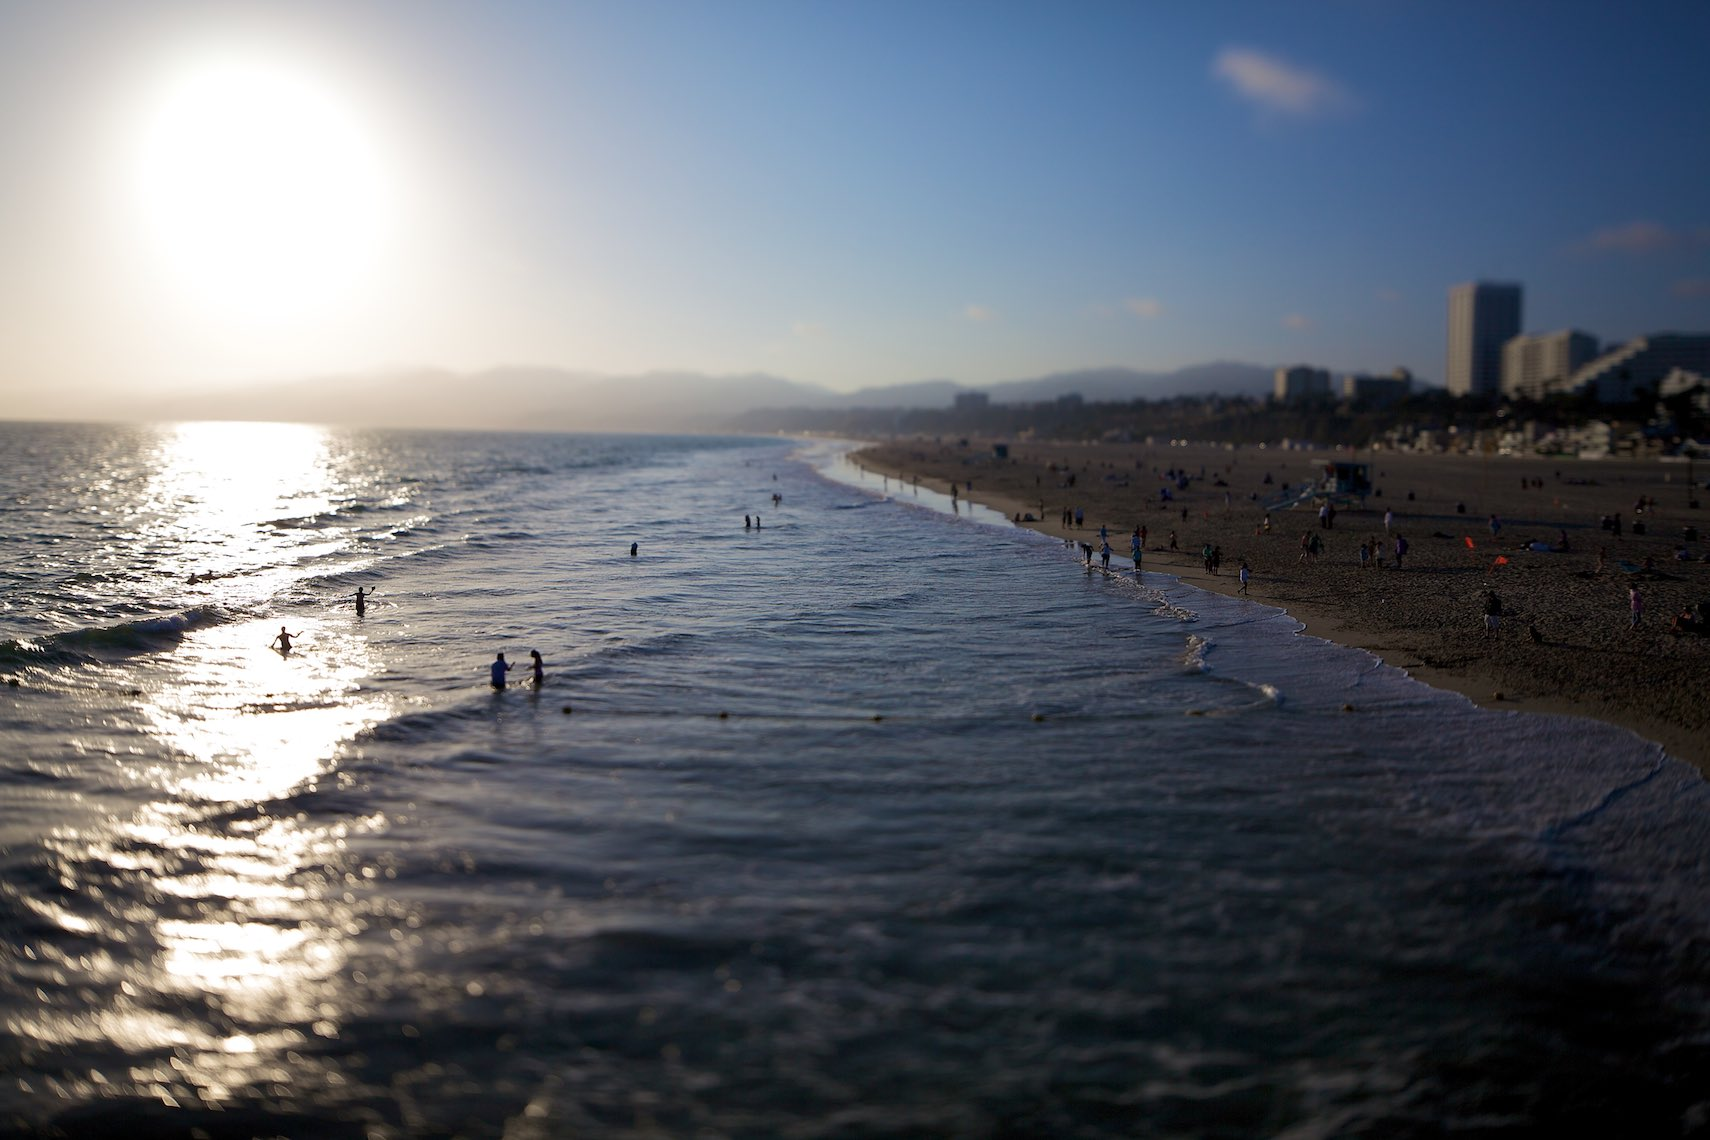 LaforetSantaMonicaBeachTilt-Shift01